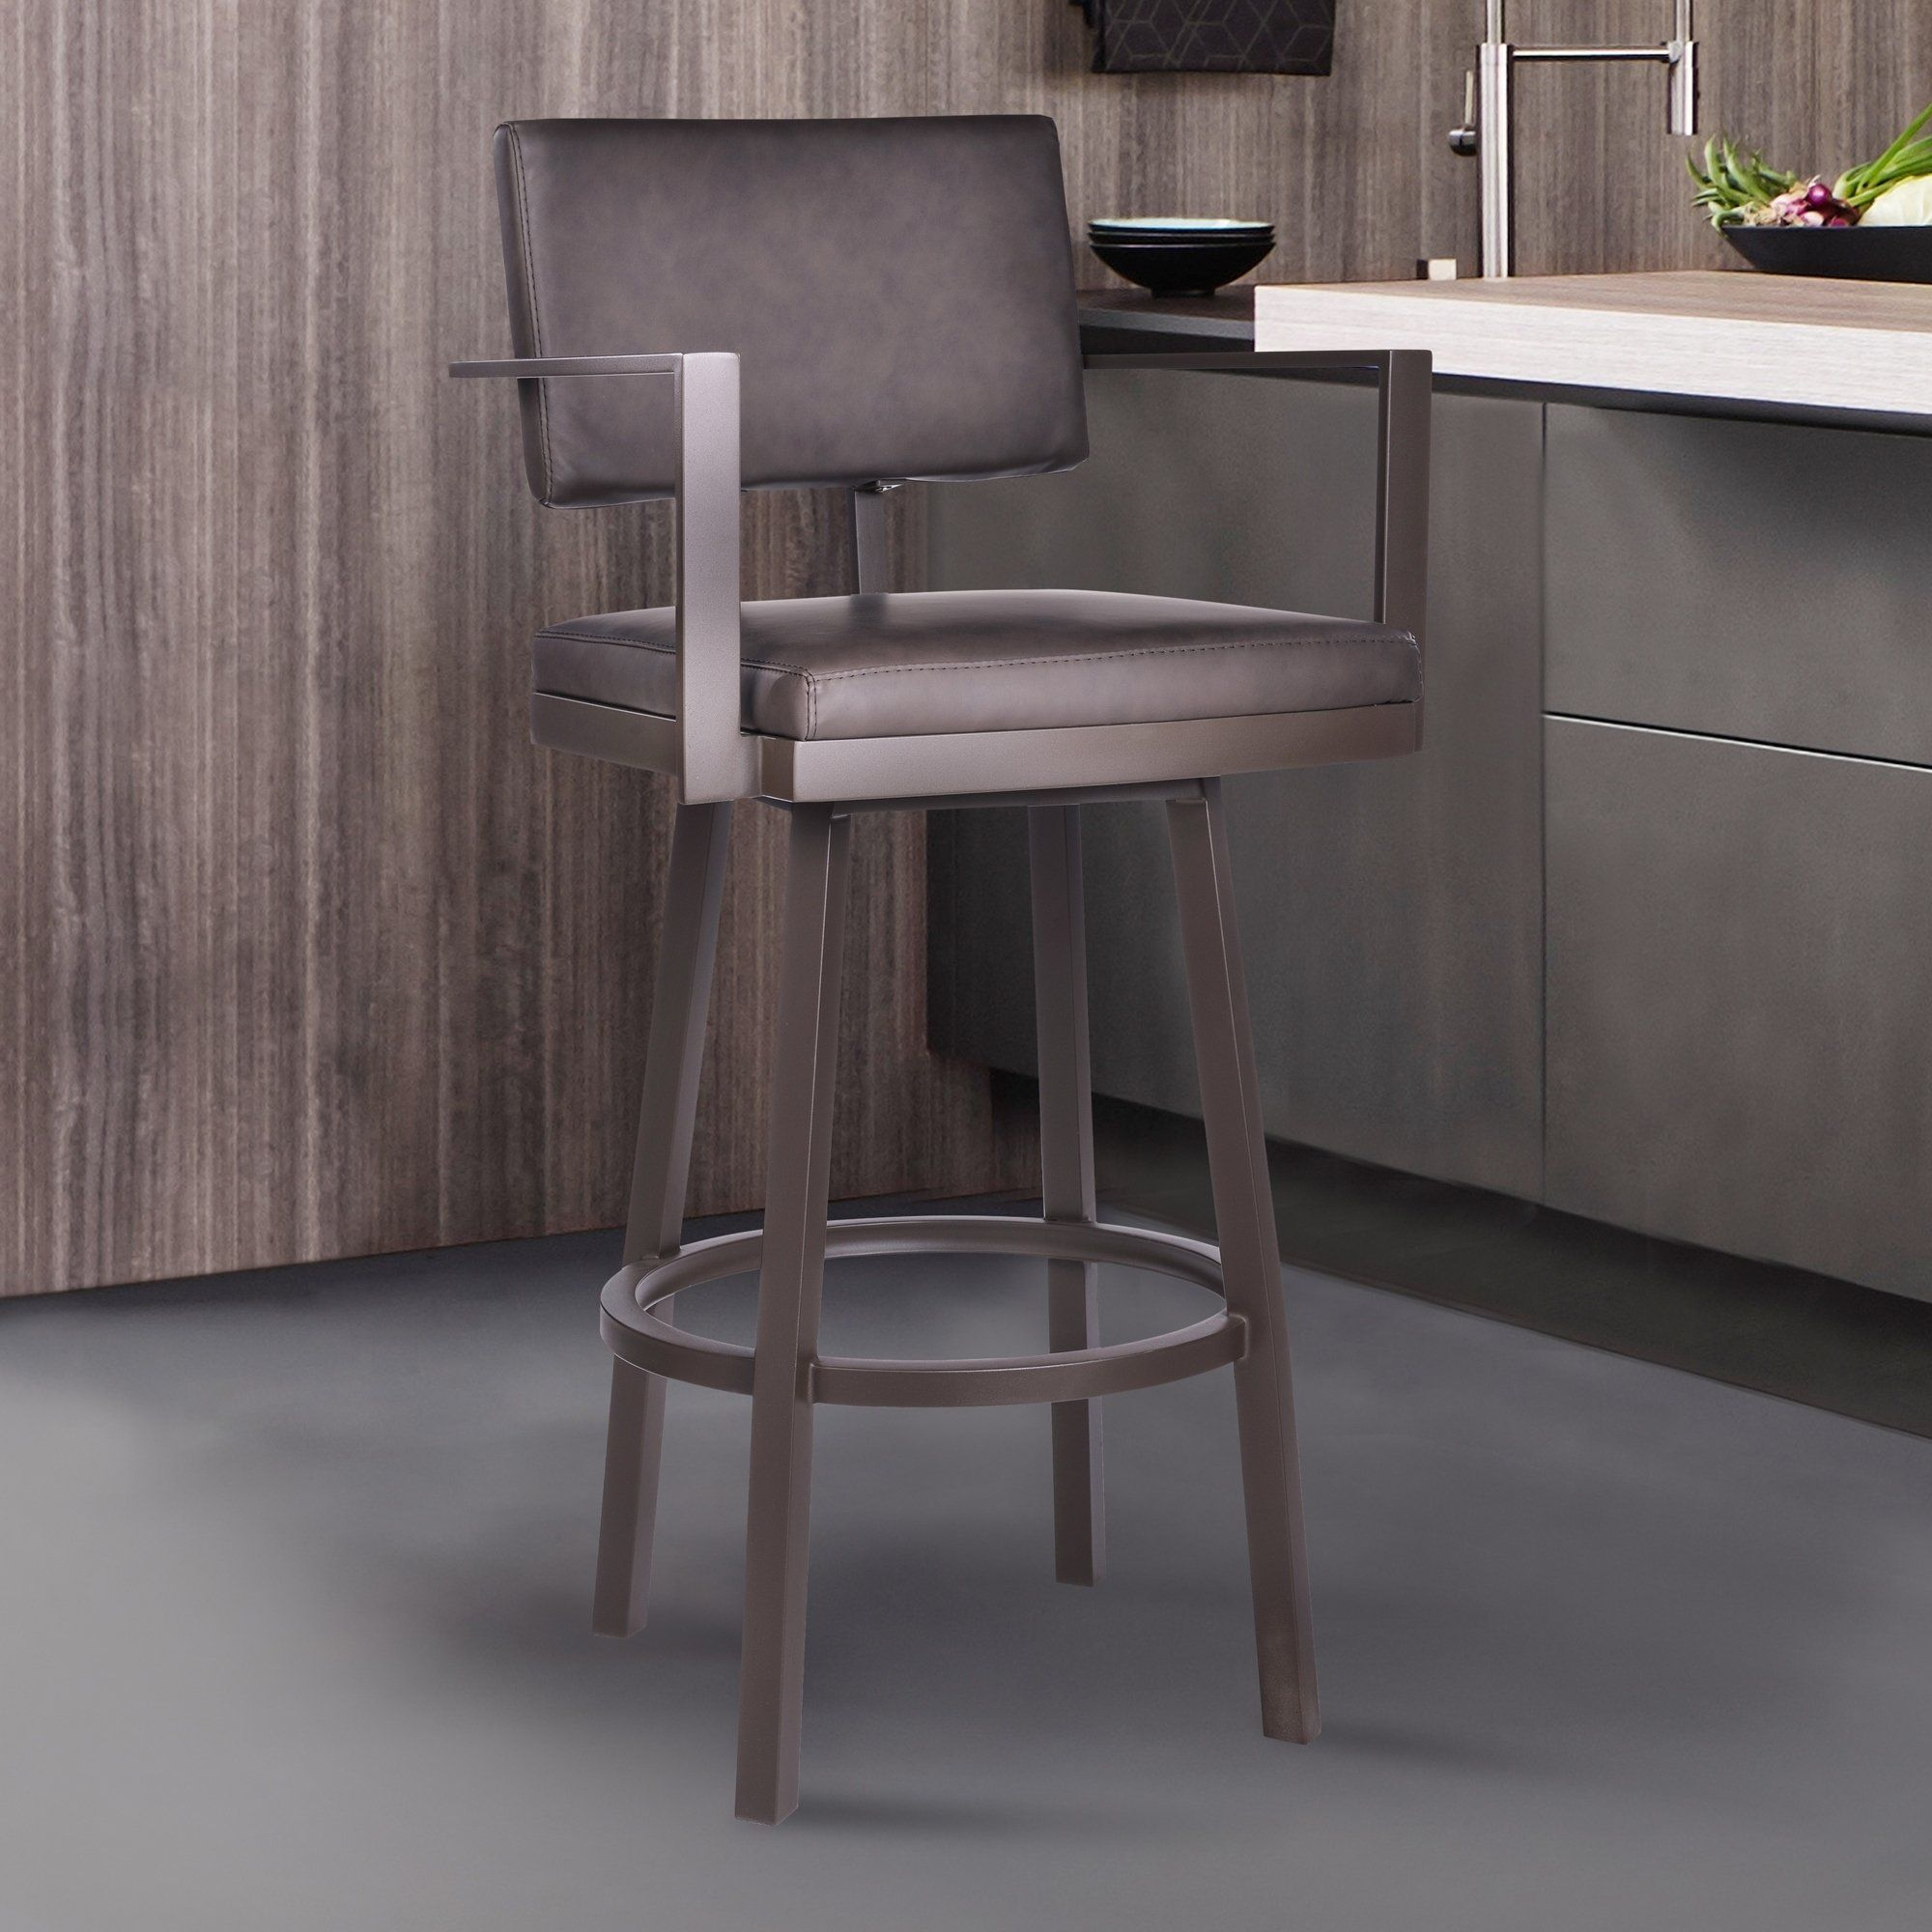 Pleasing Armen Living Balboa Barstool With Arms In A Brown Powder Bralicious Painted Fabric Chair Ideas Braliciousco